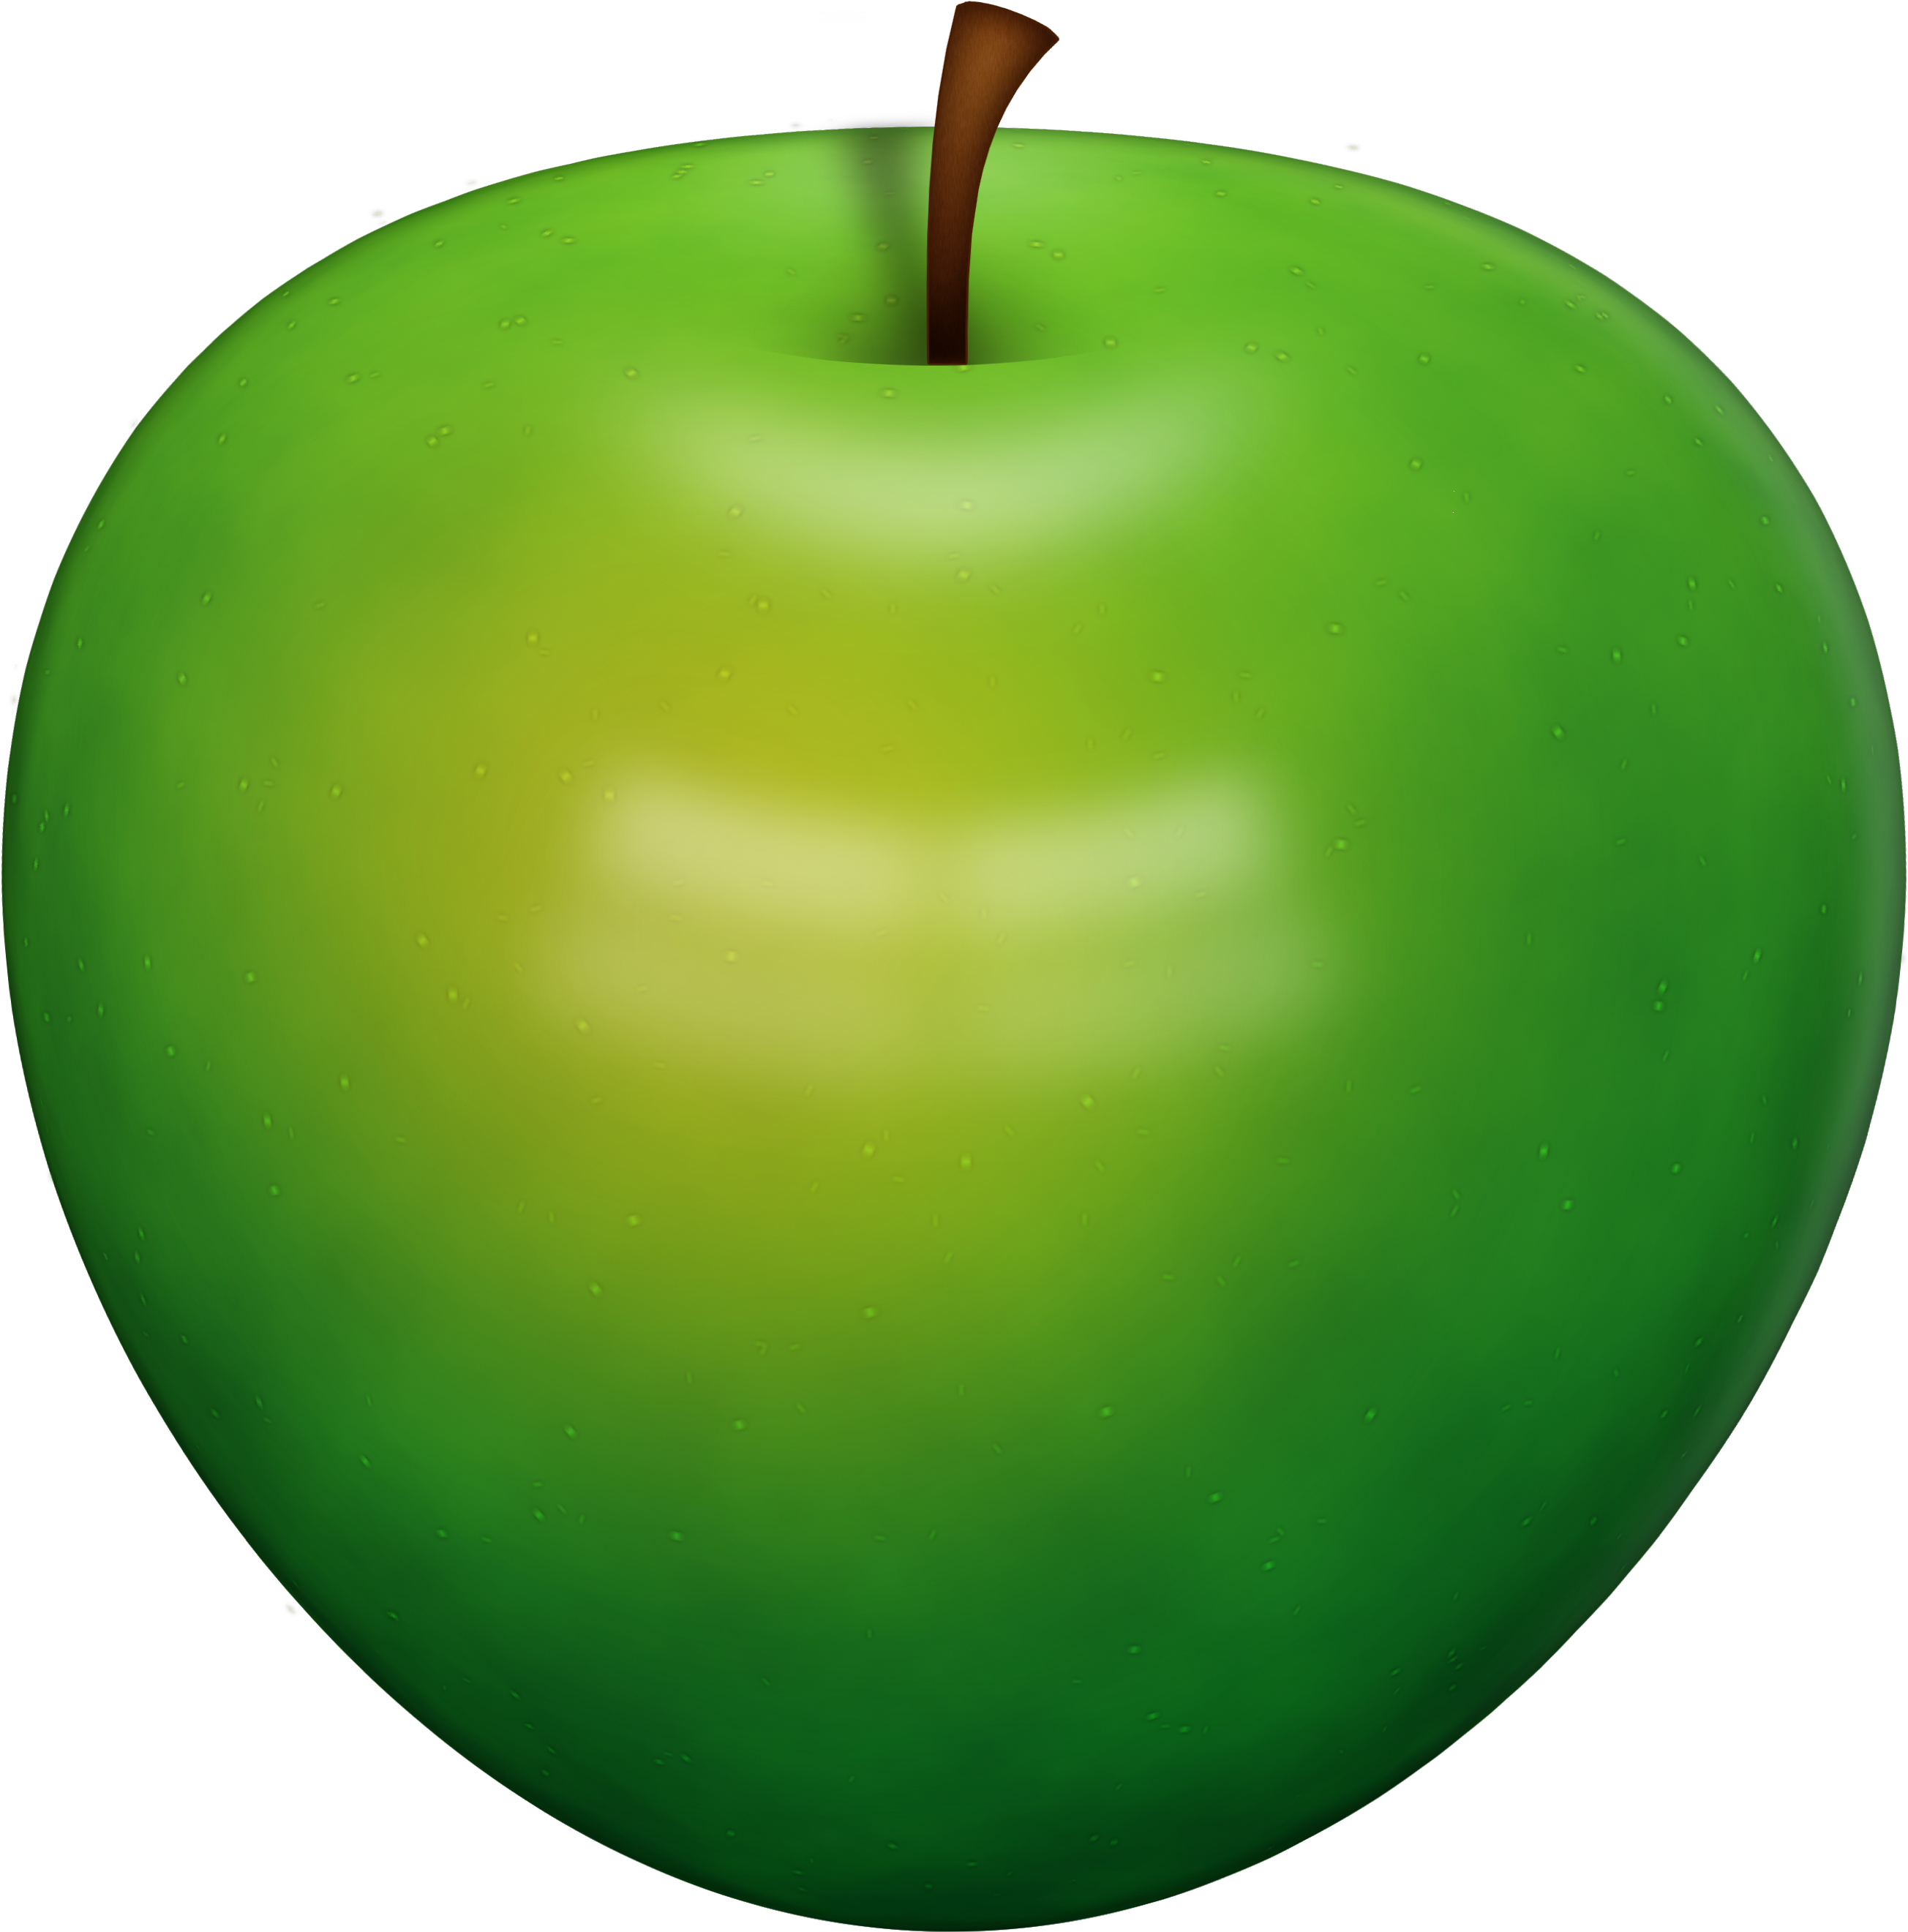 jpg transparent stock Green apples clipart. Apple s png image.